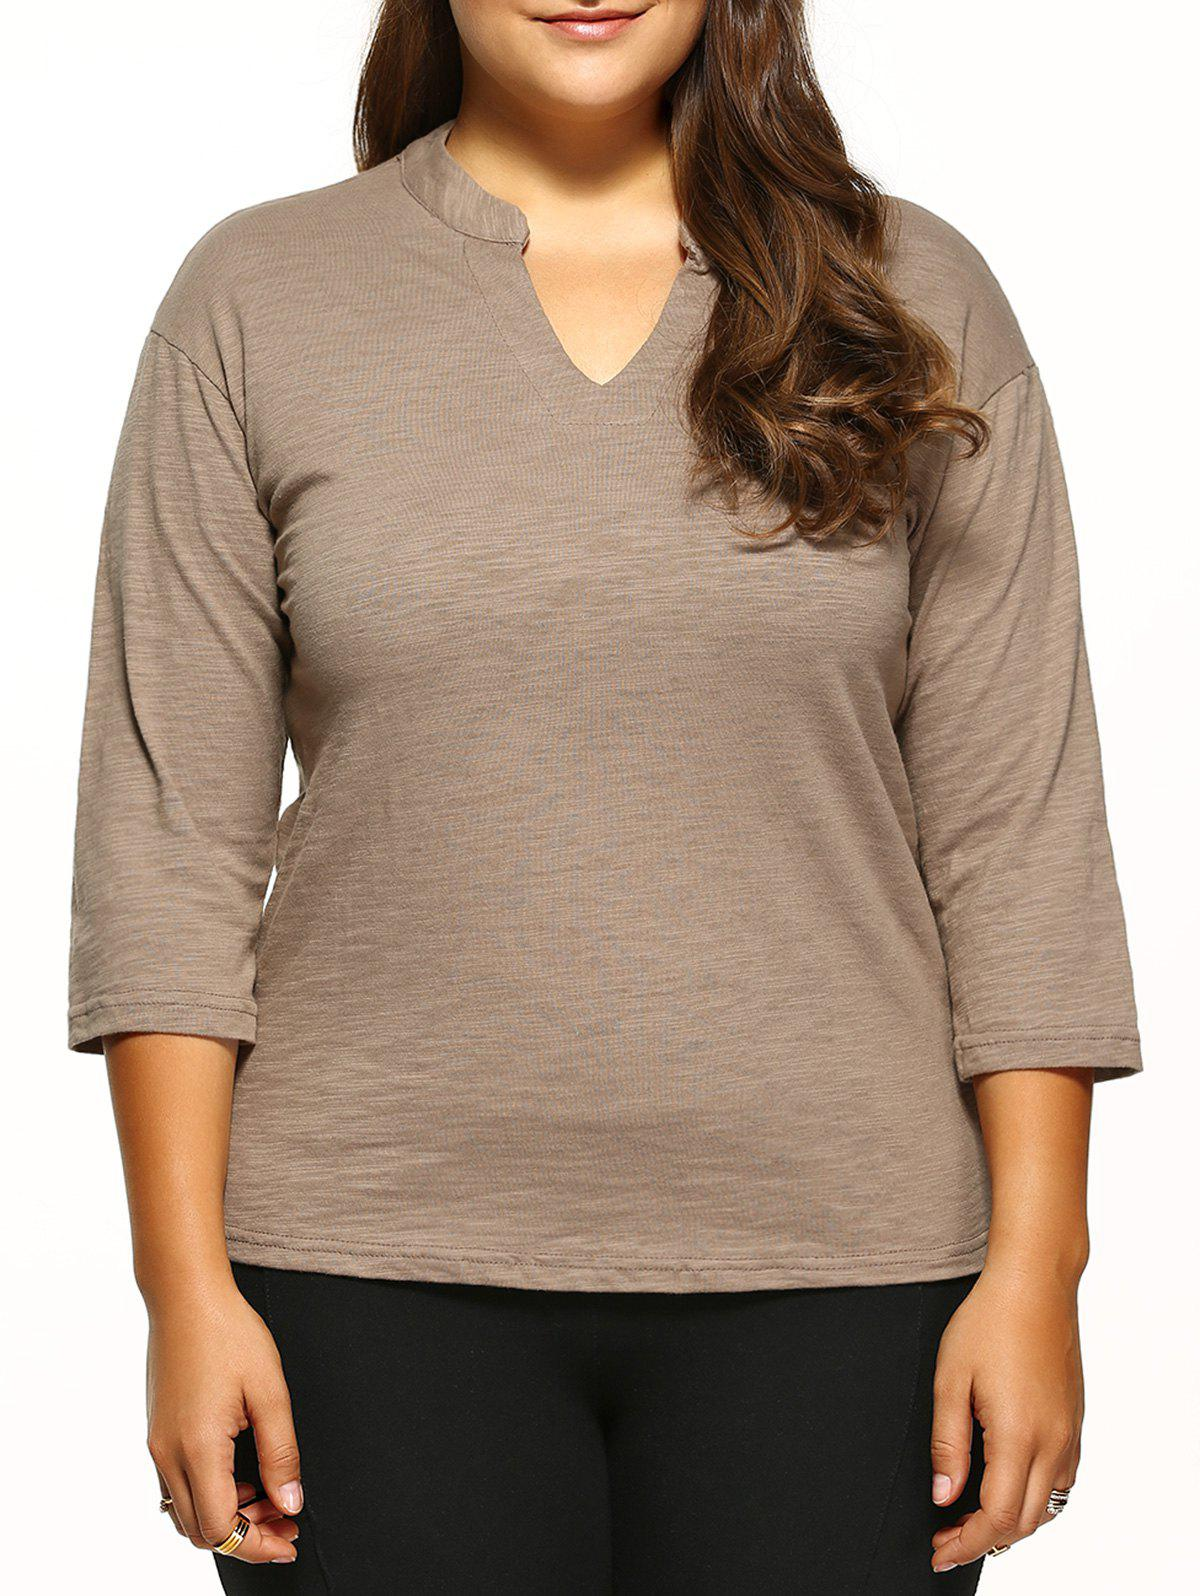 Plus Size V-Neck Tee - Camel XL